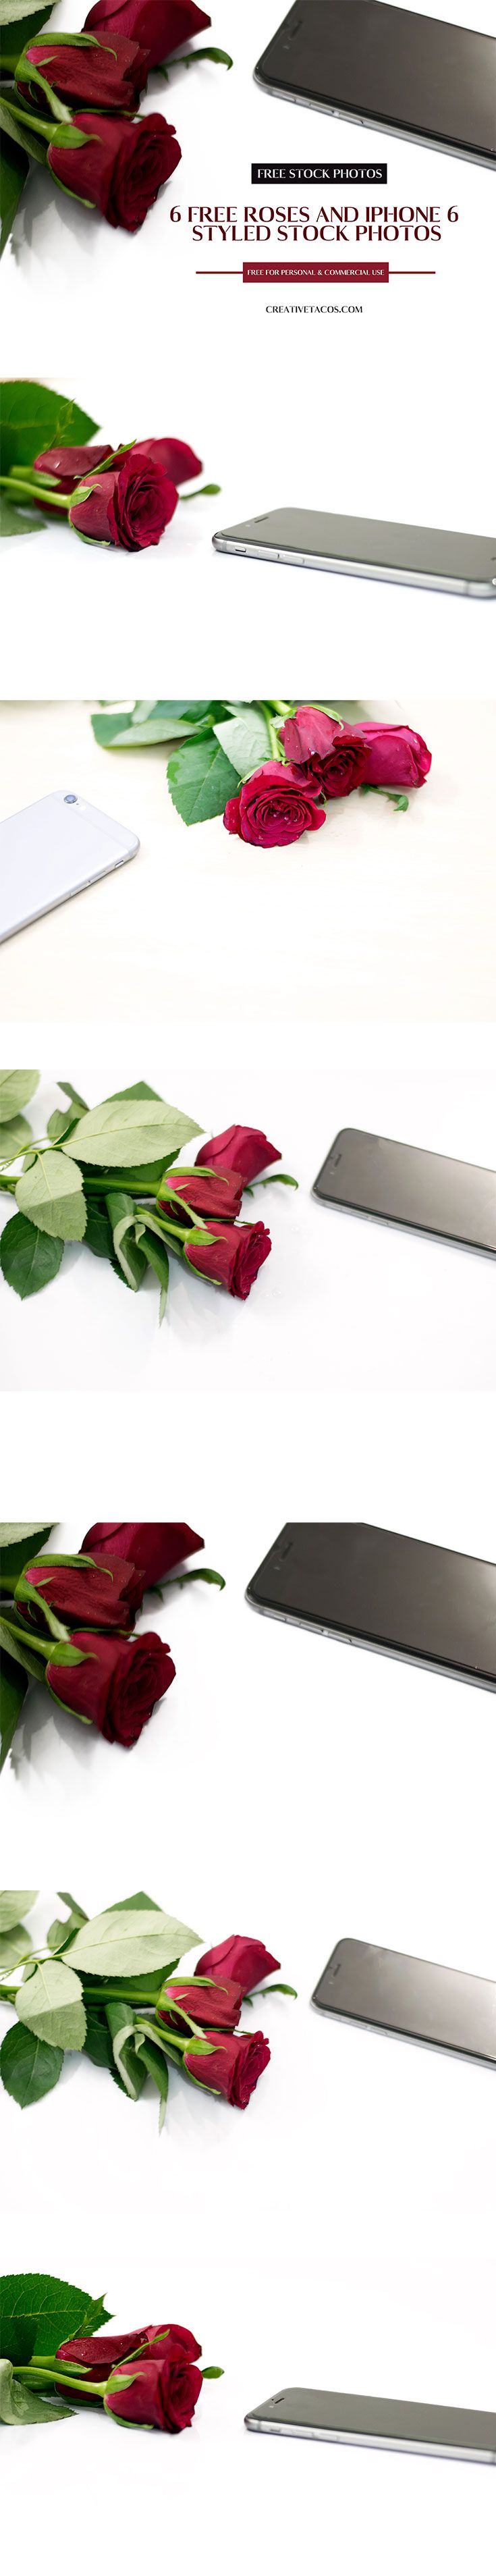 Free Roses and #iPhone 6 Styled High-Resolution #Stock #Photographs are #free for your personal and commercial use. These #photos can be used on many projects. via @creativetacos